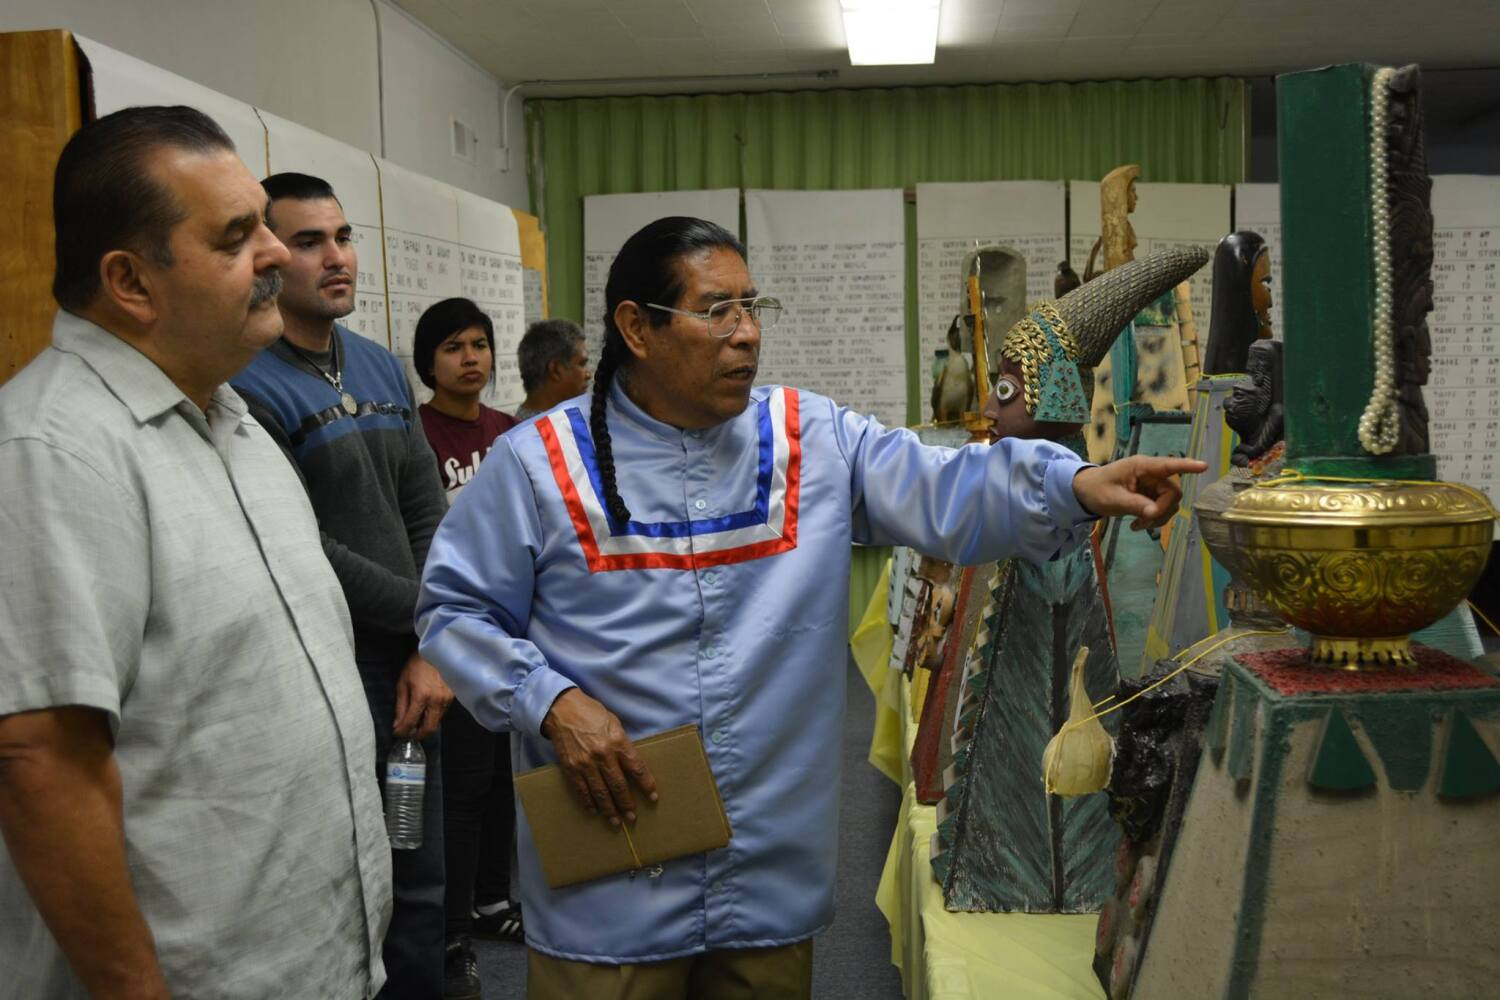 David Vazquez, Aztec-language teacher who worked to save ancestors' history, dies